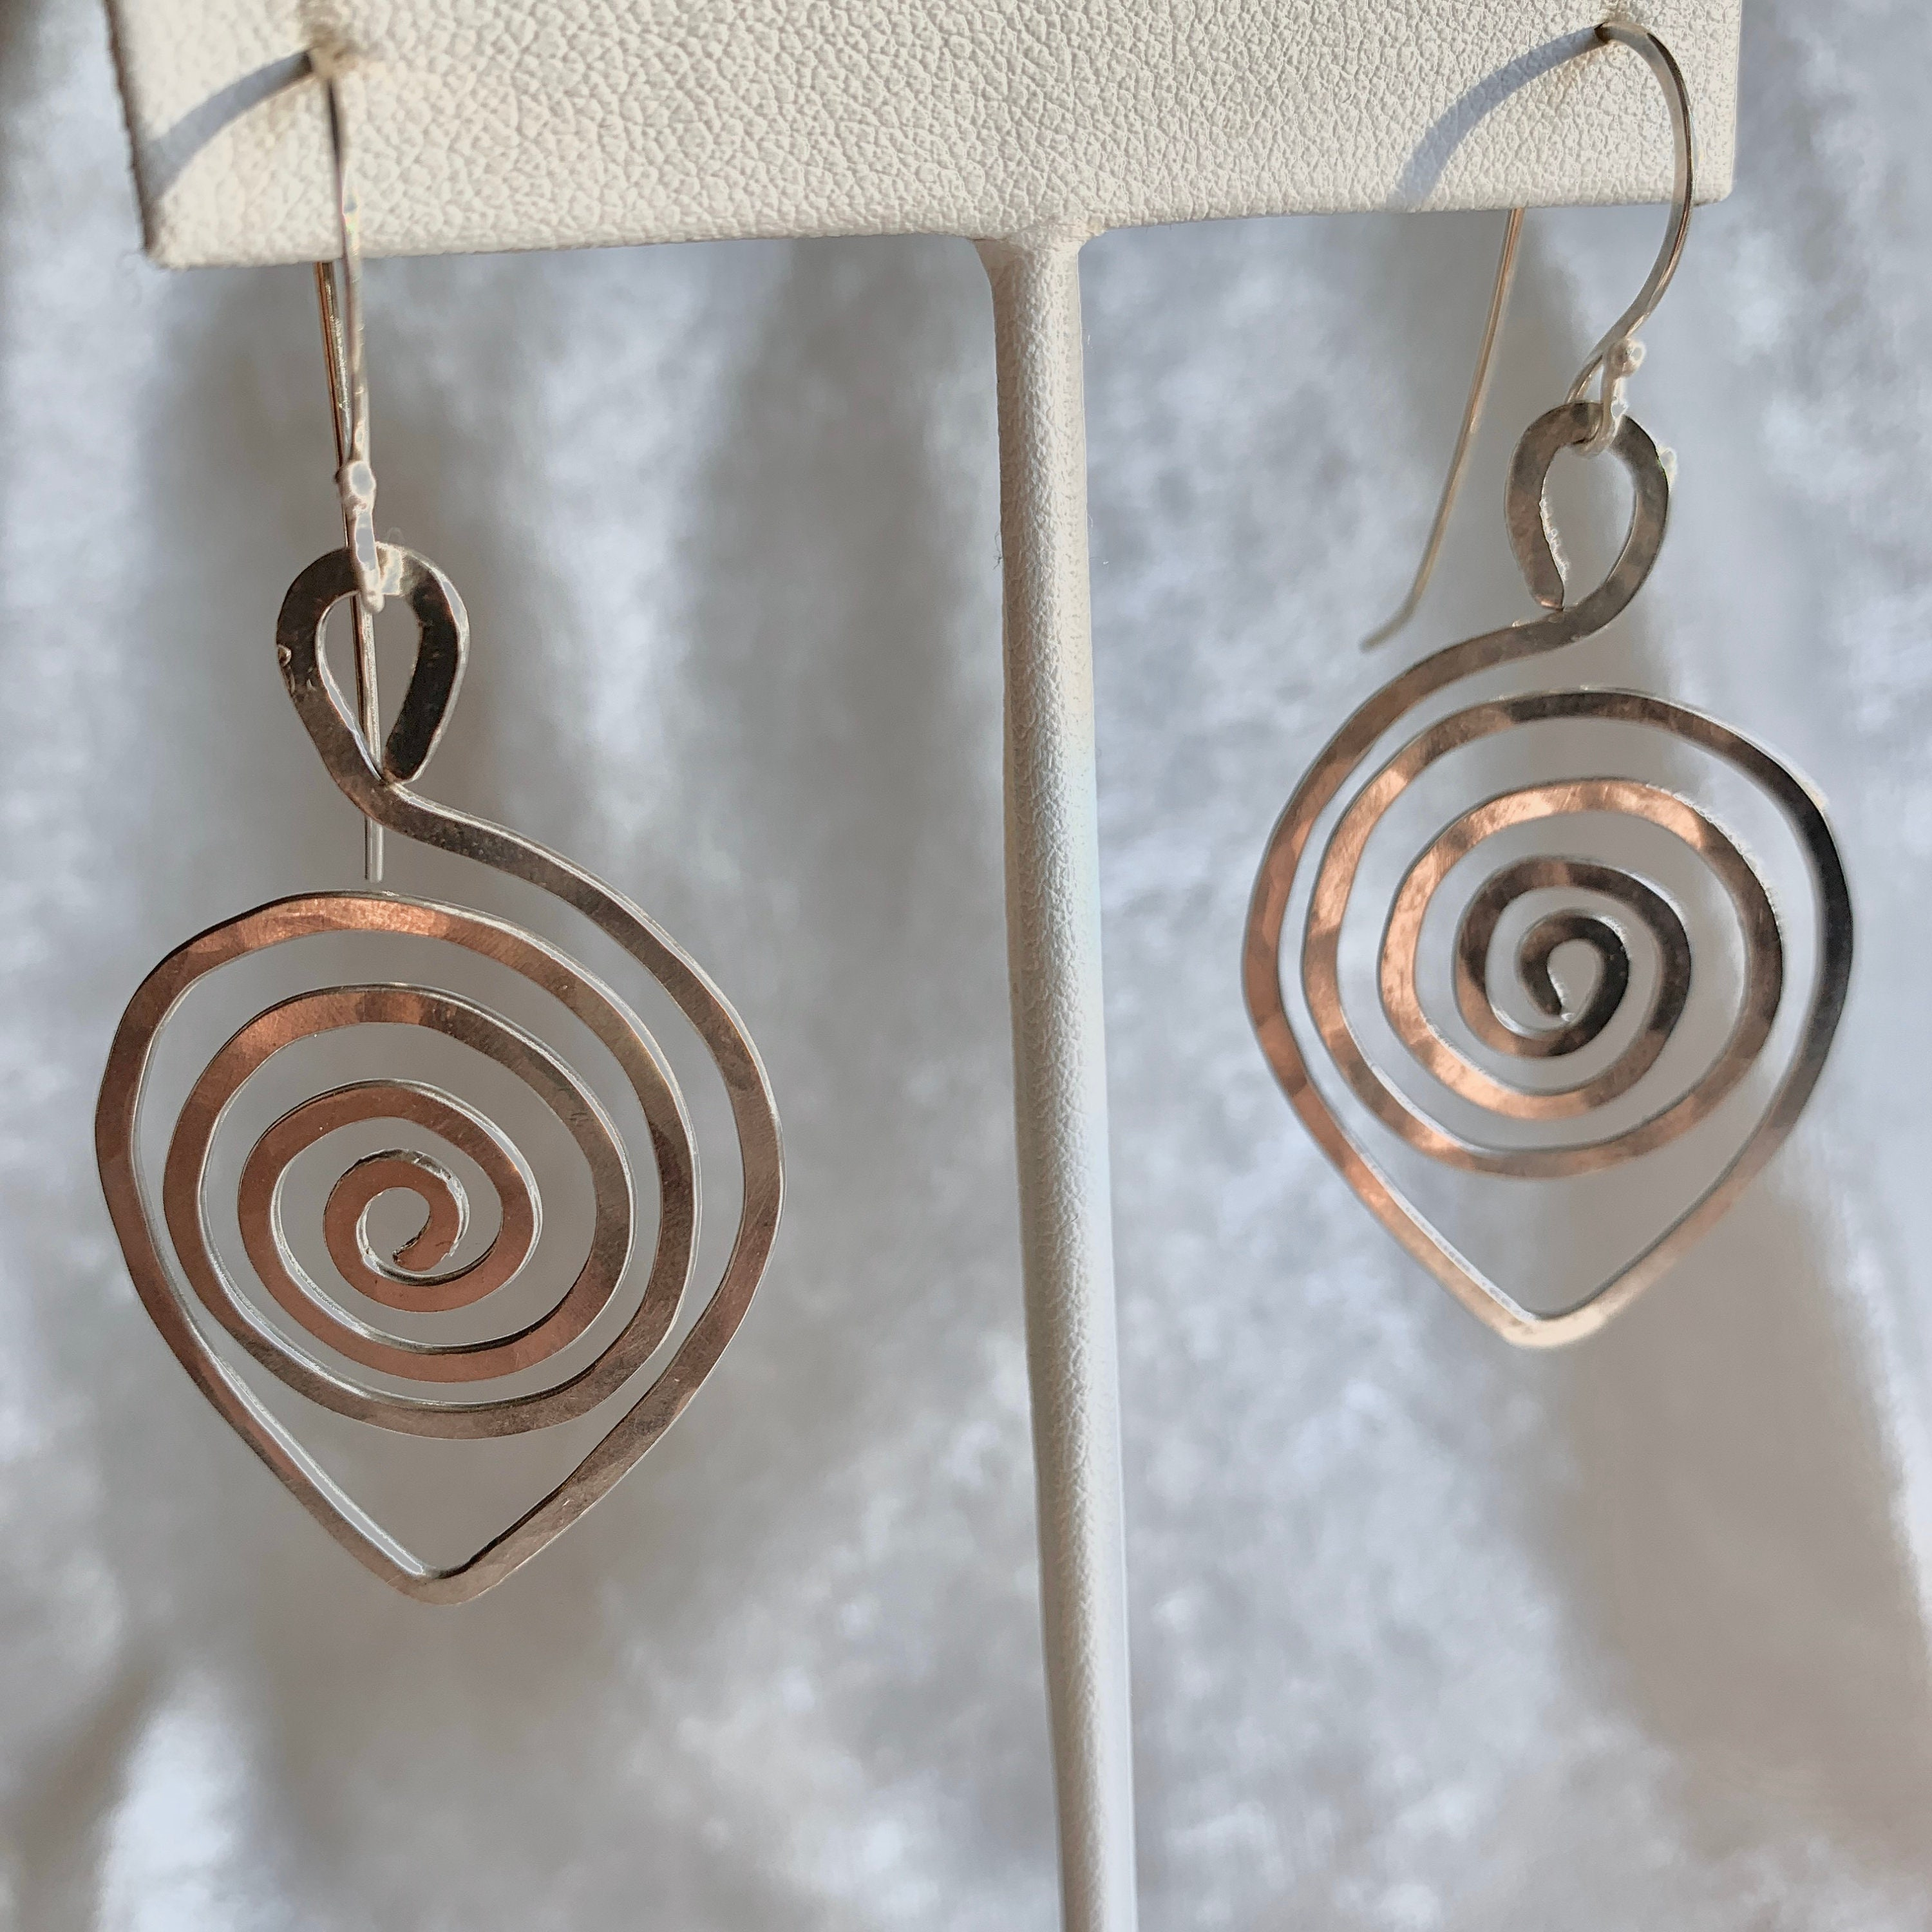 Spiral Leaf Shaped Earrings Spiral Design Leaf In Silver Wire With Sterling Silver Ear Wires